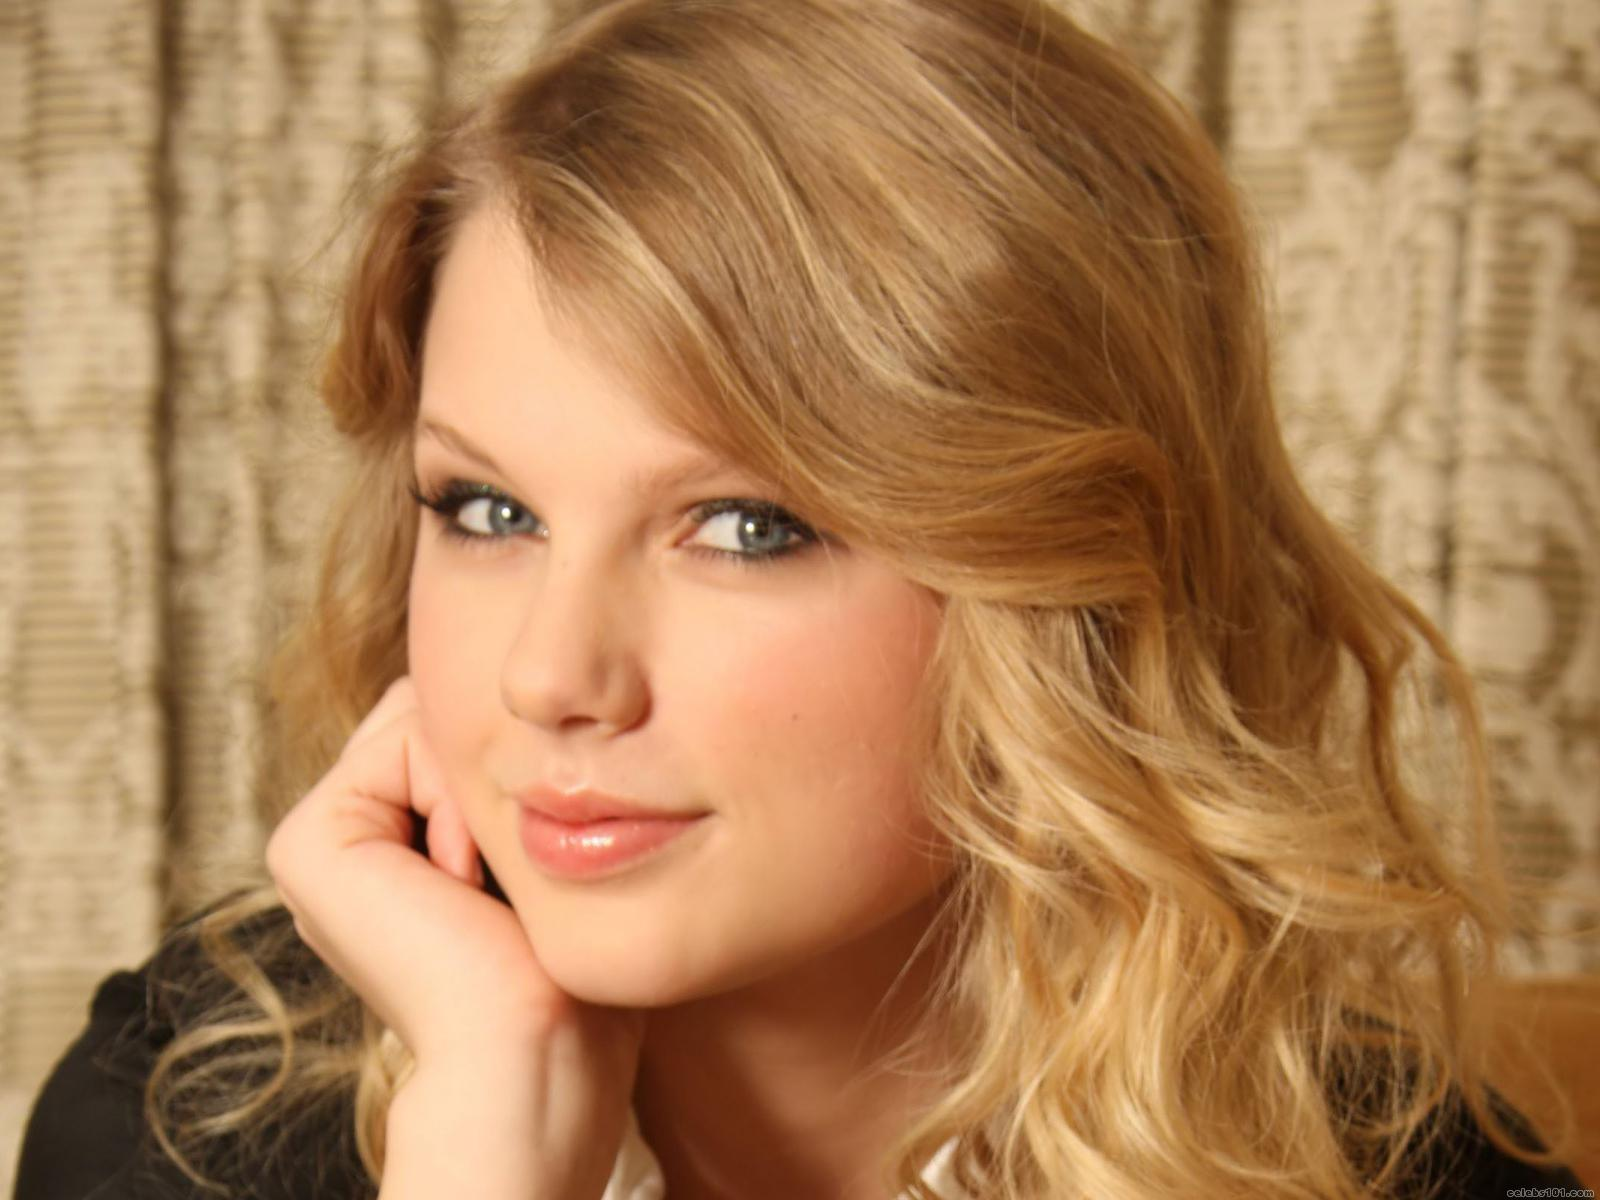 Taylor Swift seems to be the only thing that can comfort me.